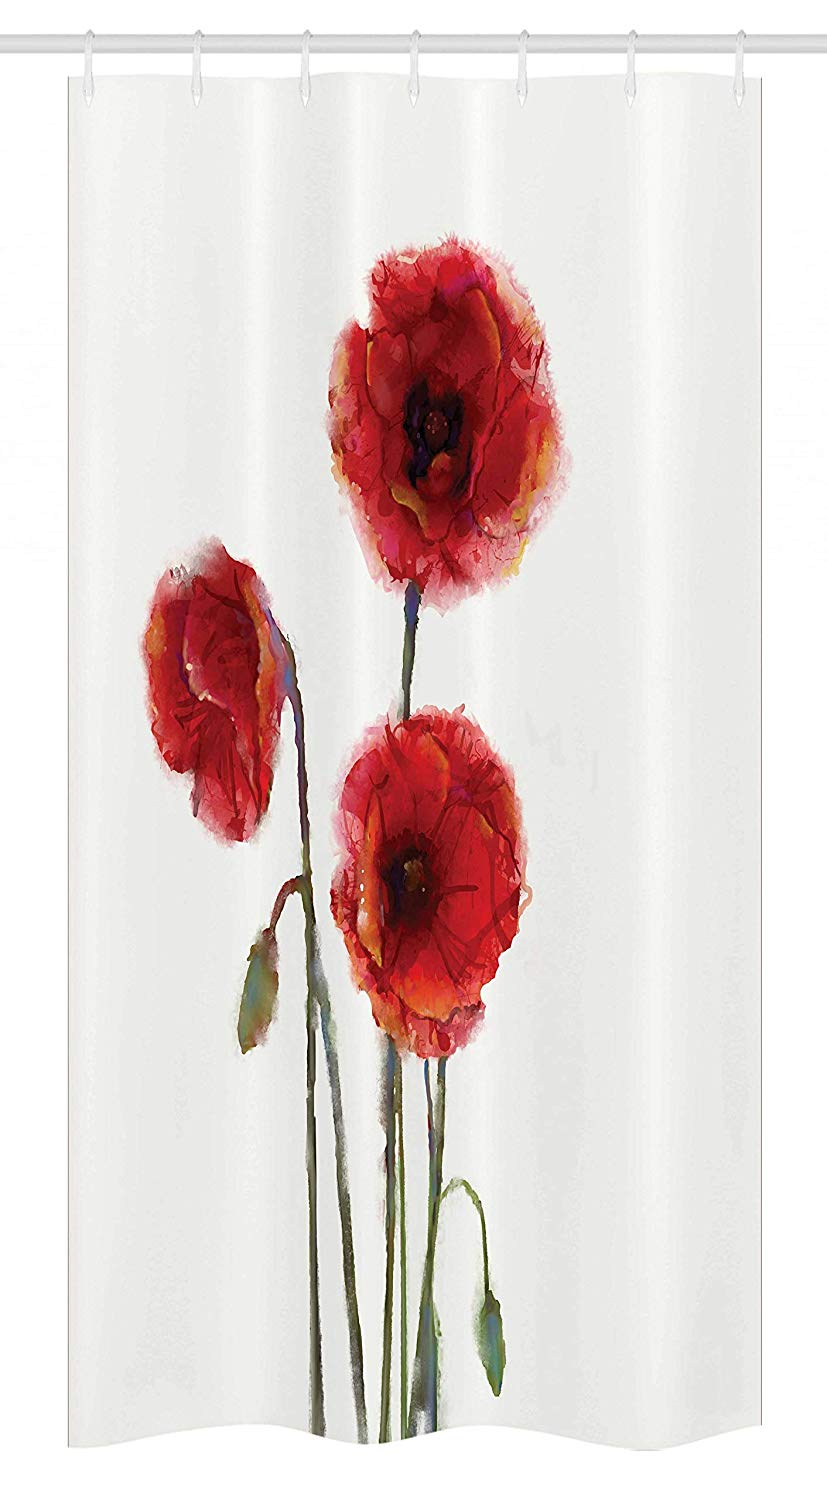 Ambesonne Watercolor Flower Stall Shower Curtain, Poppy Flowers Spring Blossoms with Watercolor Painting Effect, Fabric Bathroom Decor Set with Hooks, 36 W x 72 L Inches, White Red Sage Green